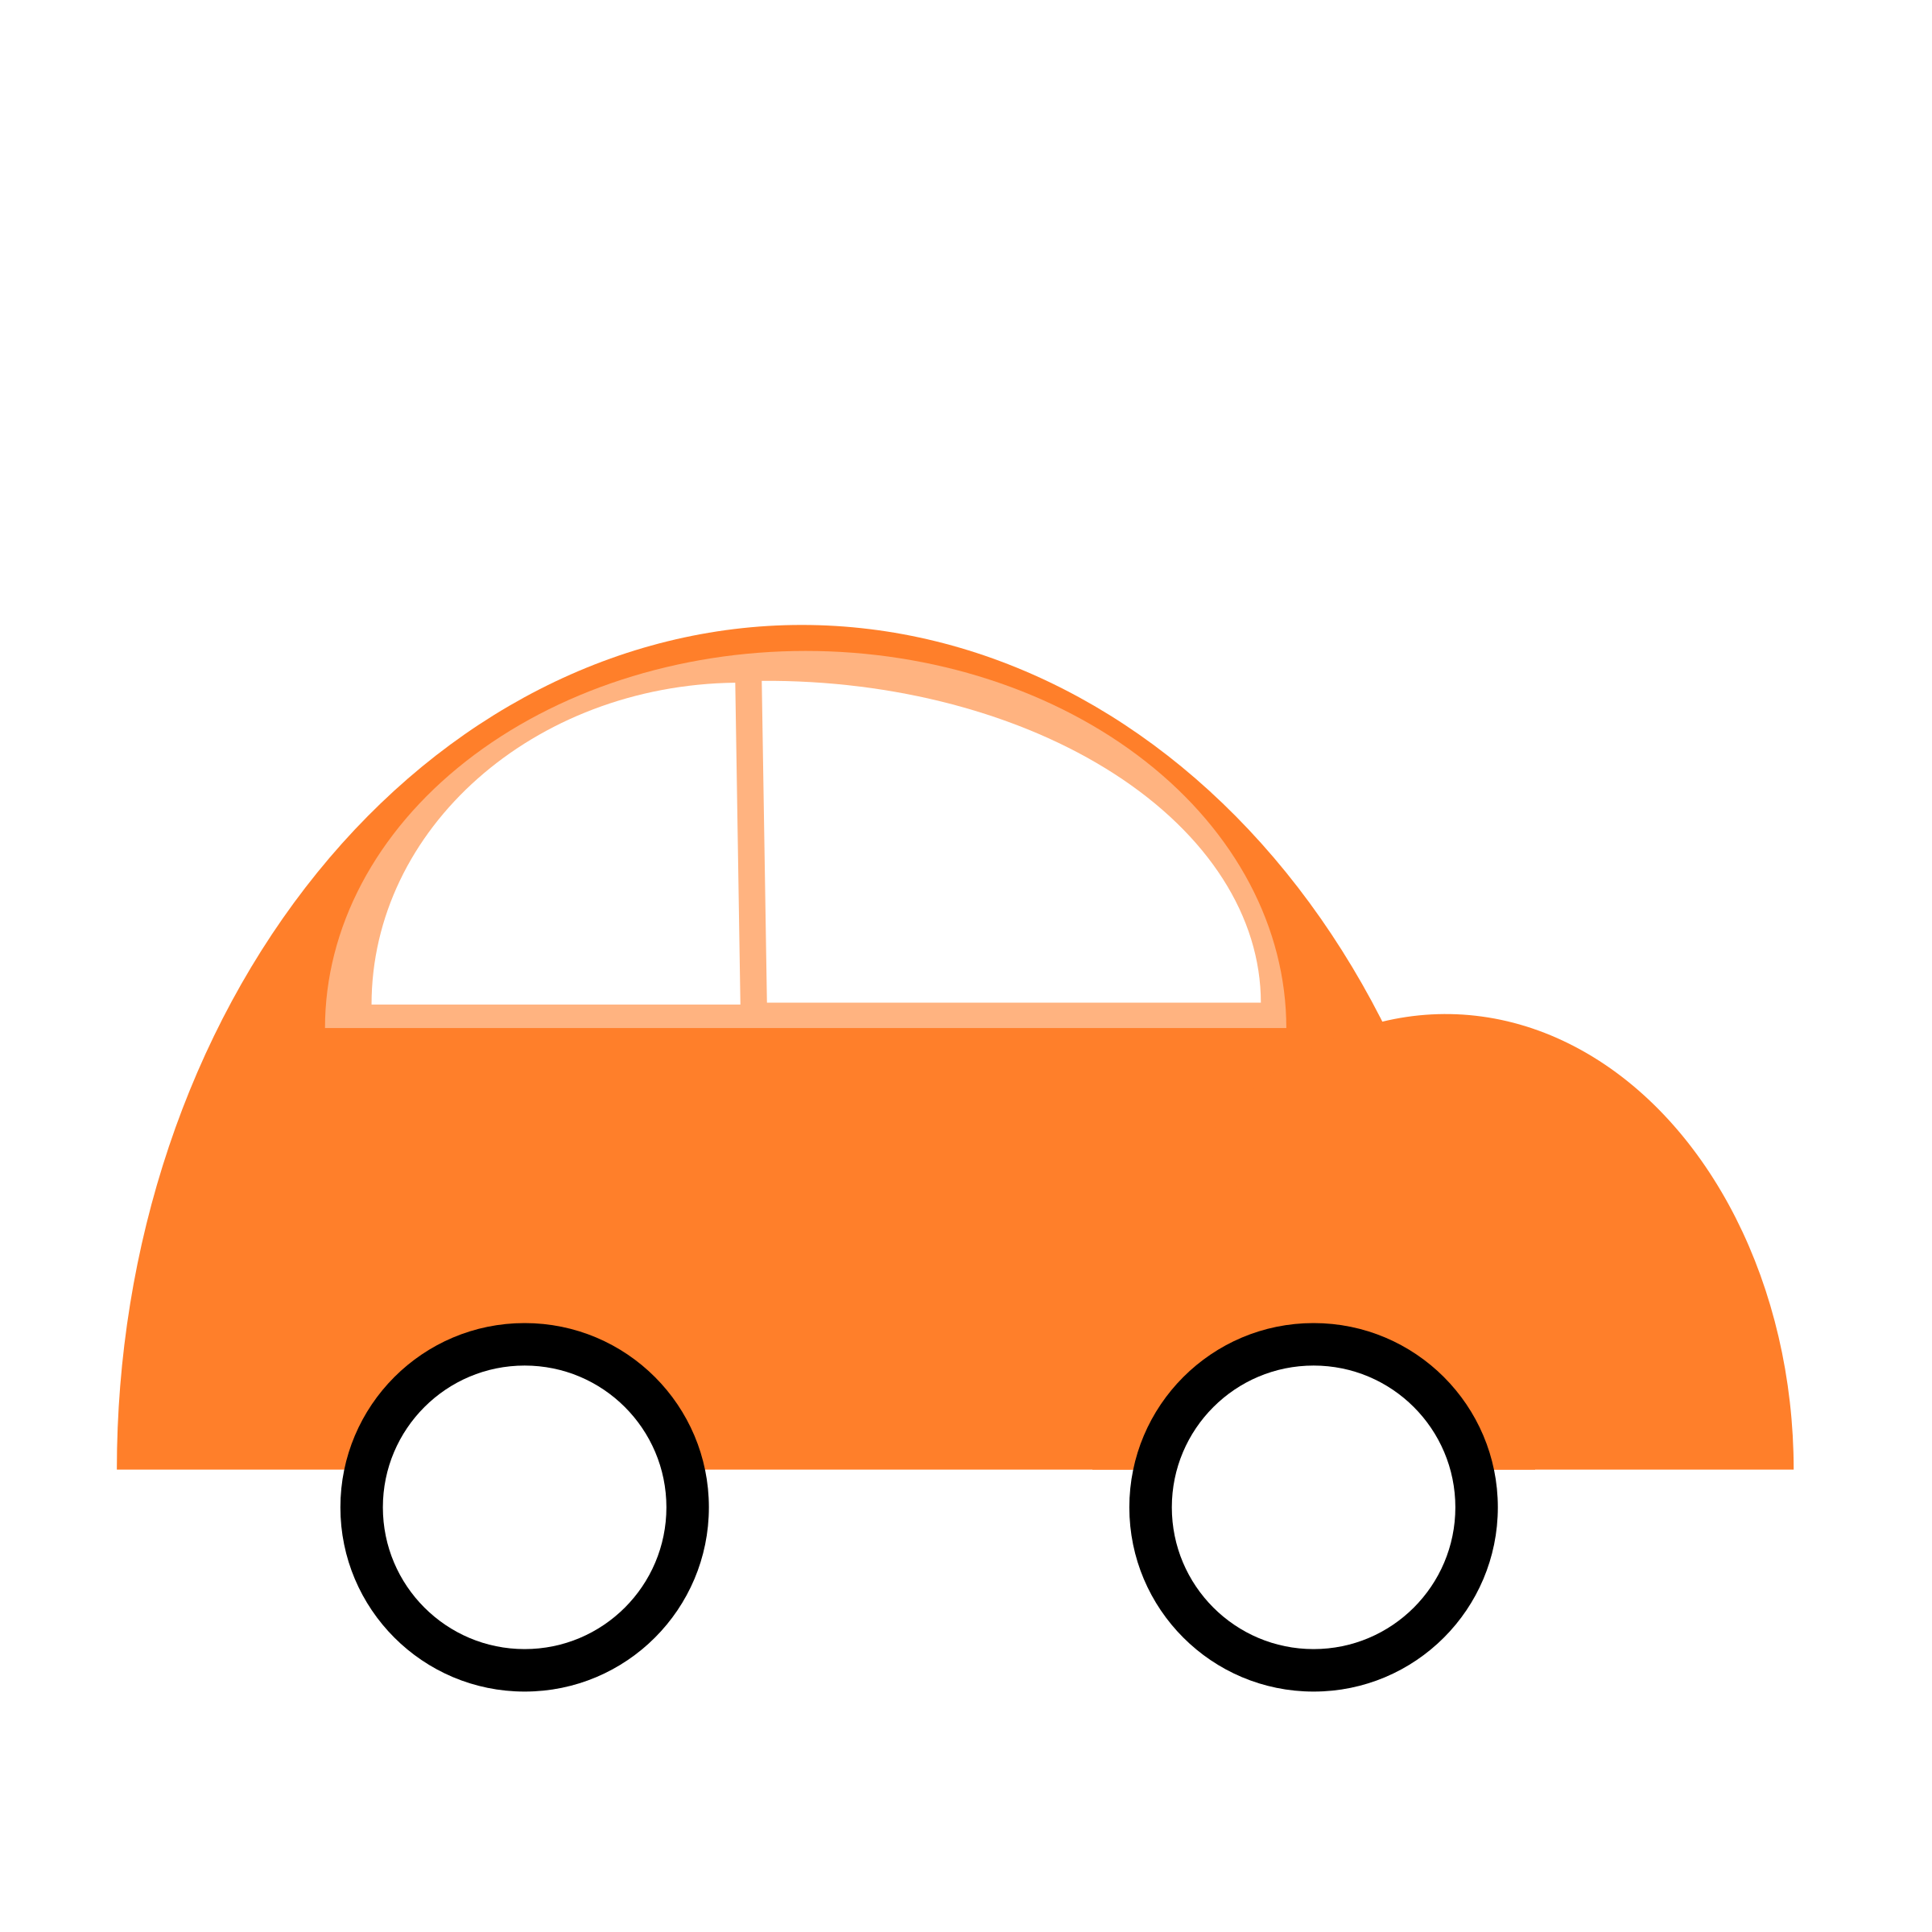 CAR- Simple-flat-three-color-with-space by oldifluff